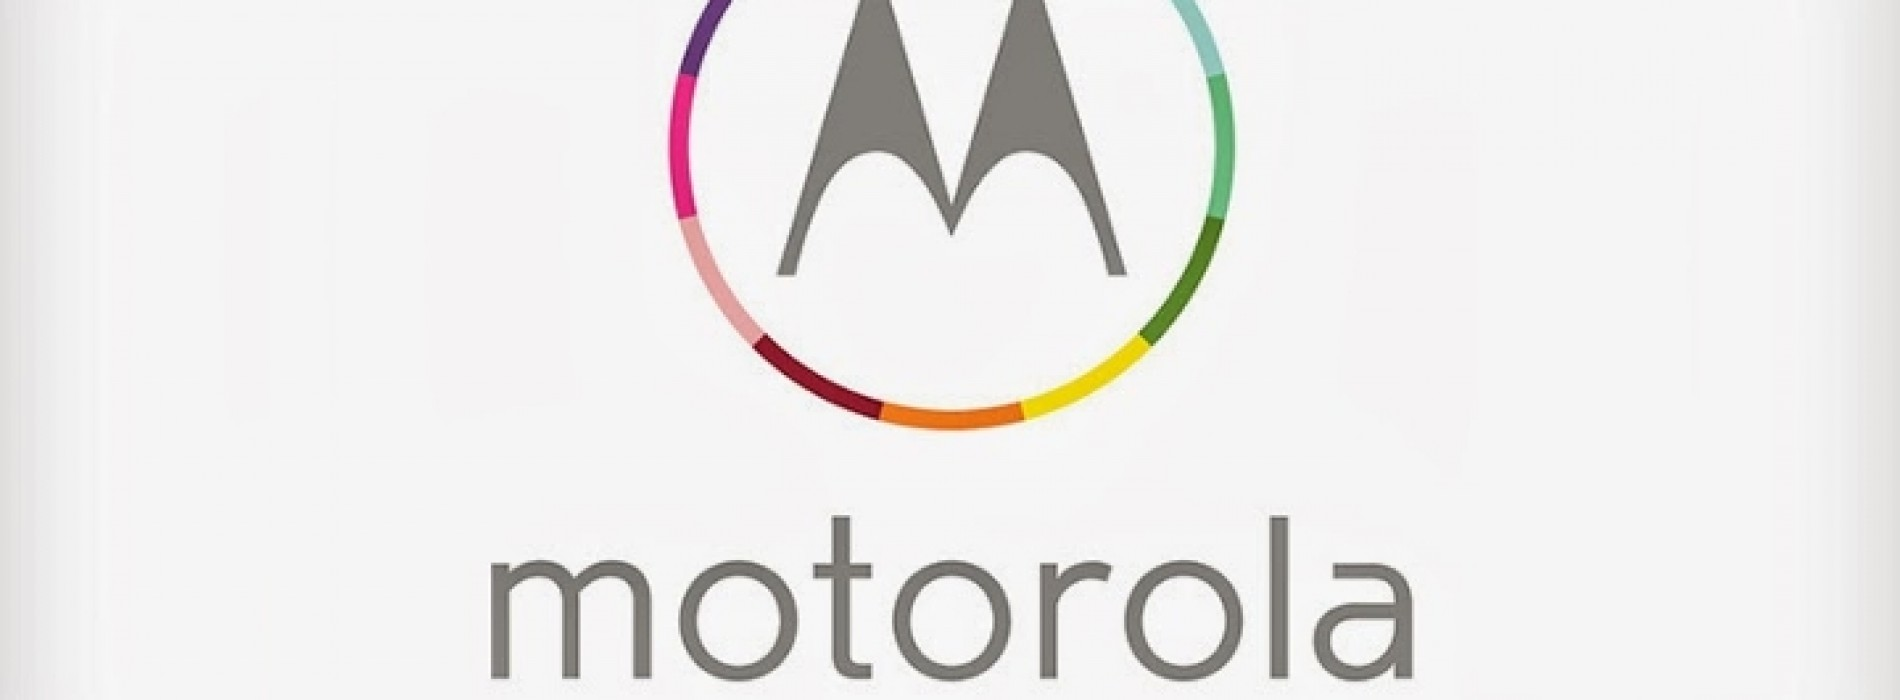 Benchmarks suggest Motorola XT1032 could be Moto G